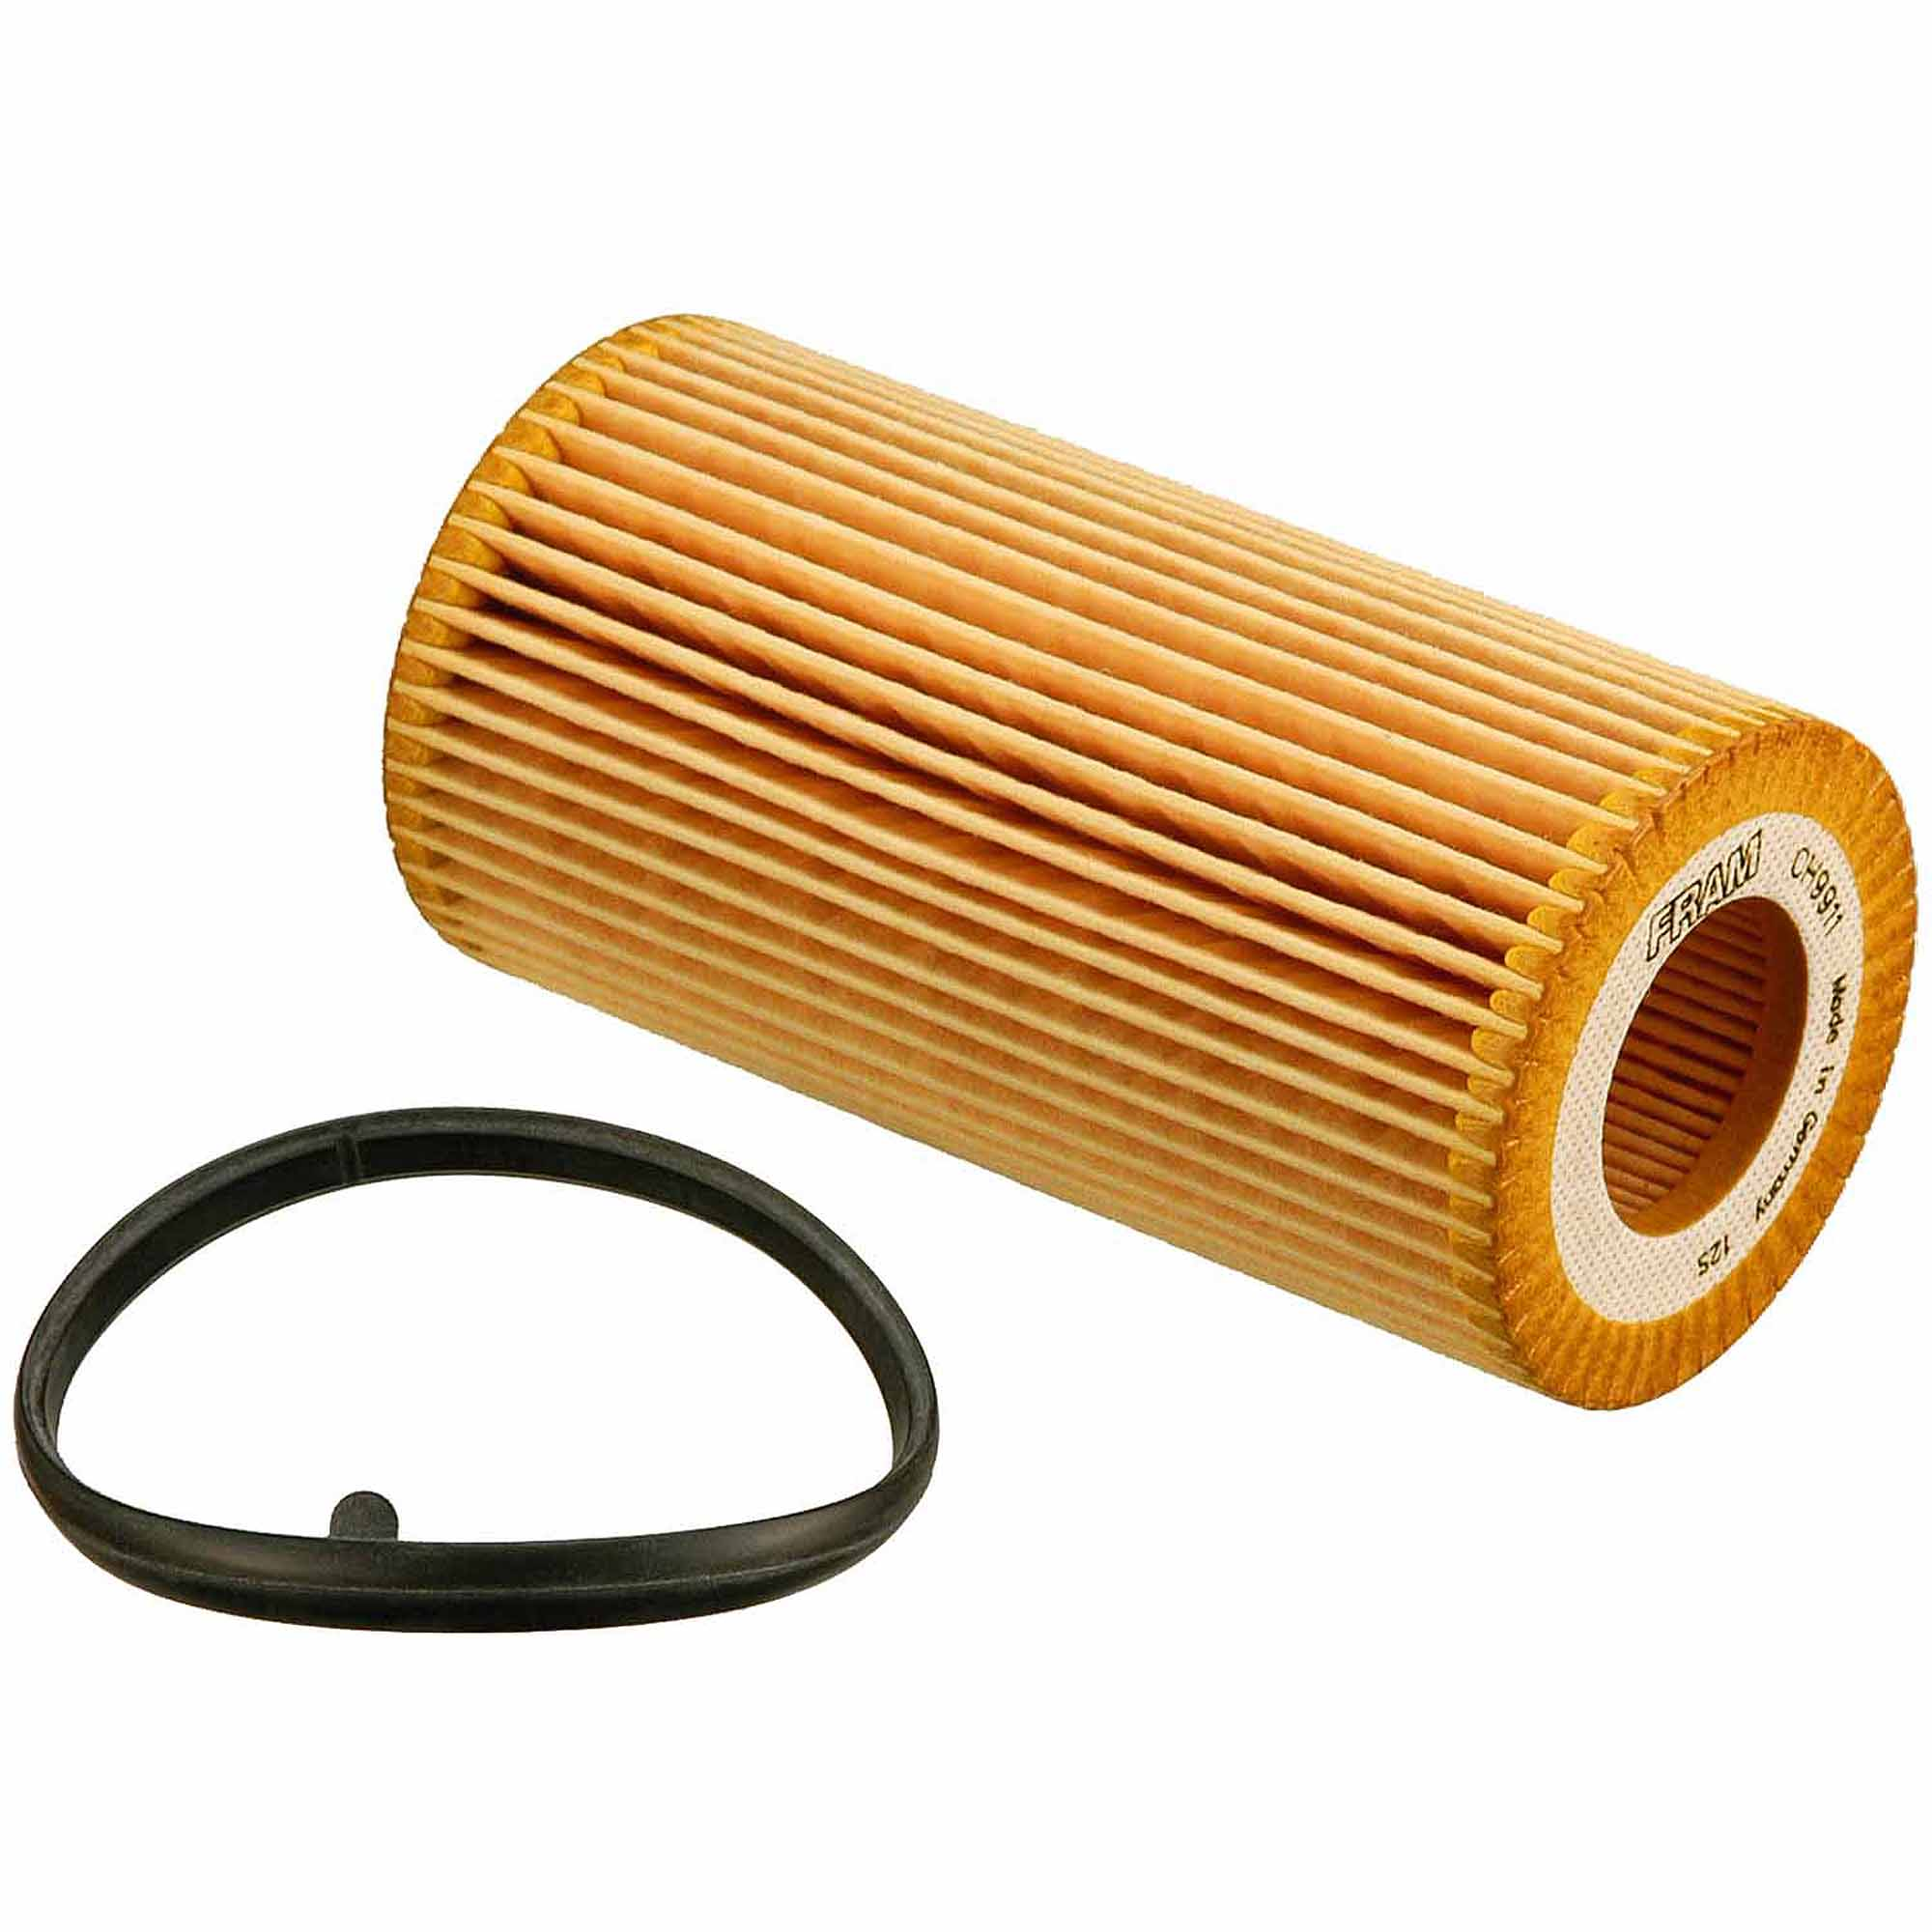 FRAM Oil Filter REBATE Items